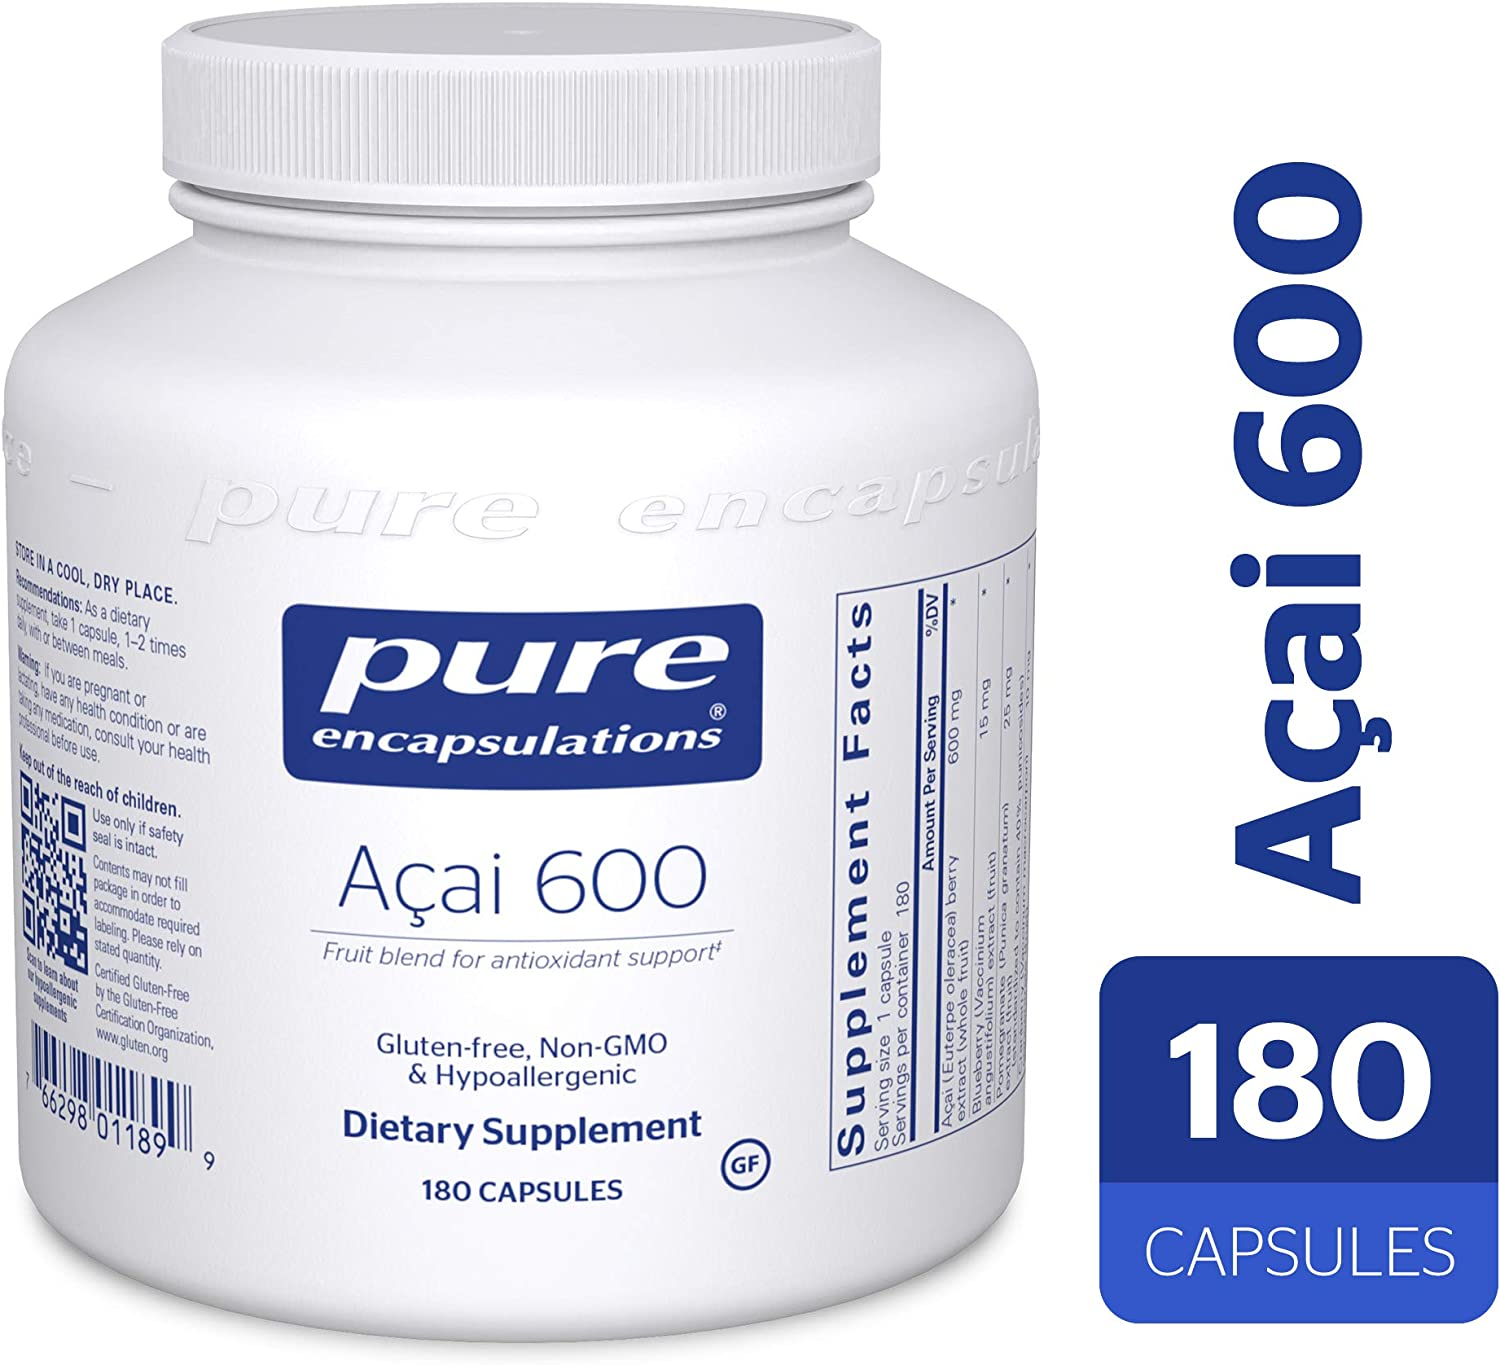 Pure Encapsulations – Acai 600 – Hypoallergenic Berry and Fruit Supplement for Antioxidant Protection* – 180 Capsules